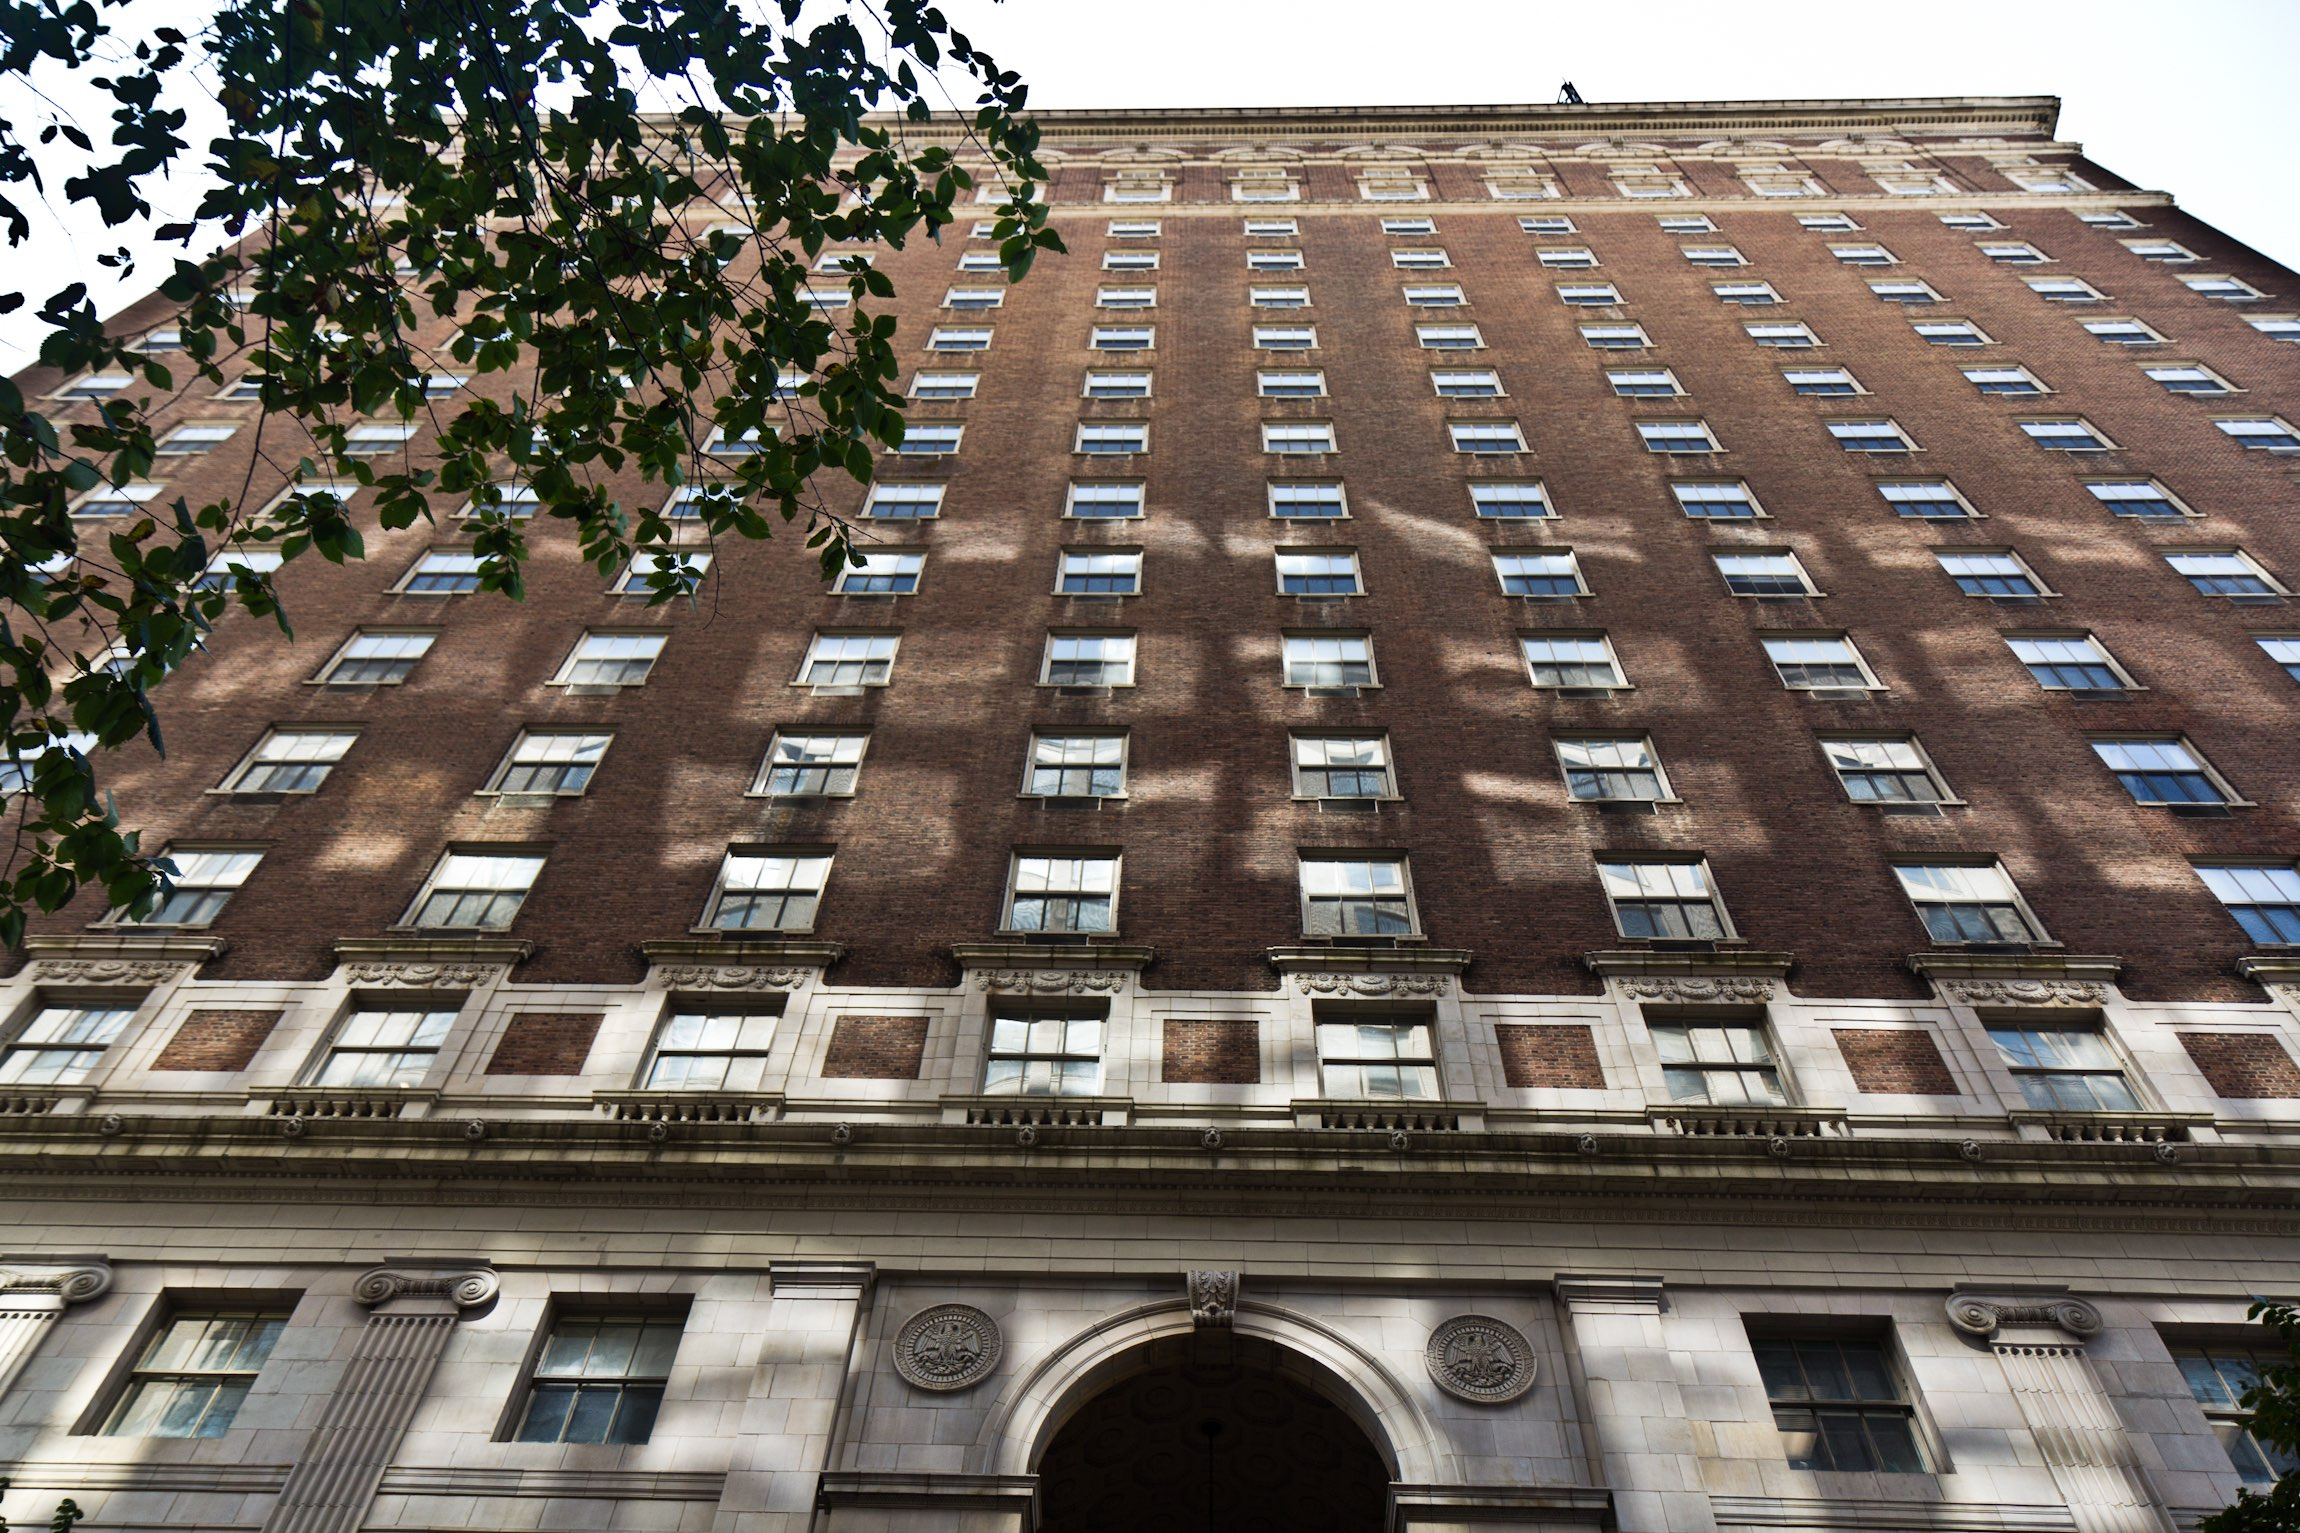 The Benjamin Franklin Hotel, located at 834 Chestnut St, opened in 1925. (Kimberly Paynter/WHYY)